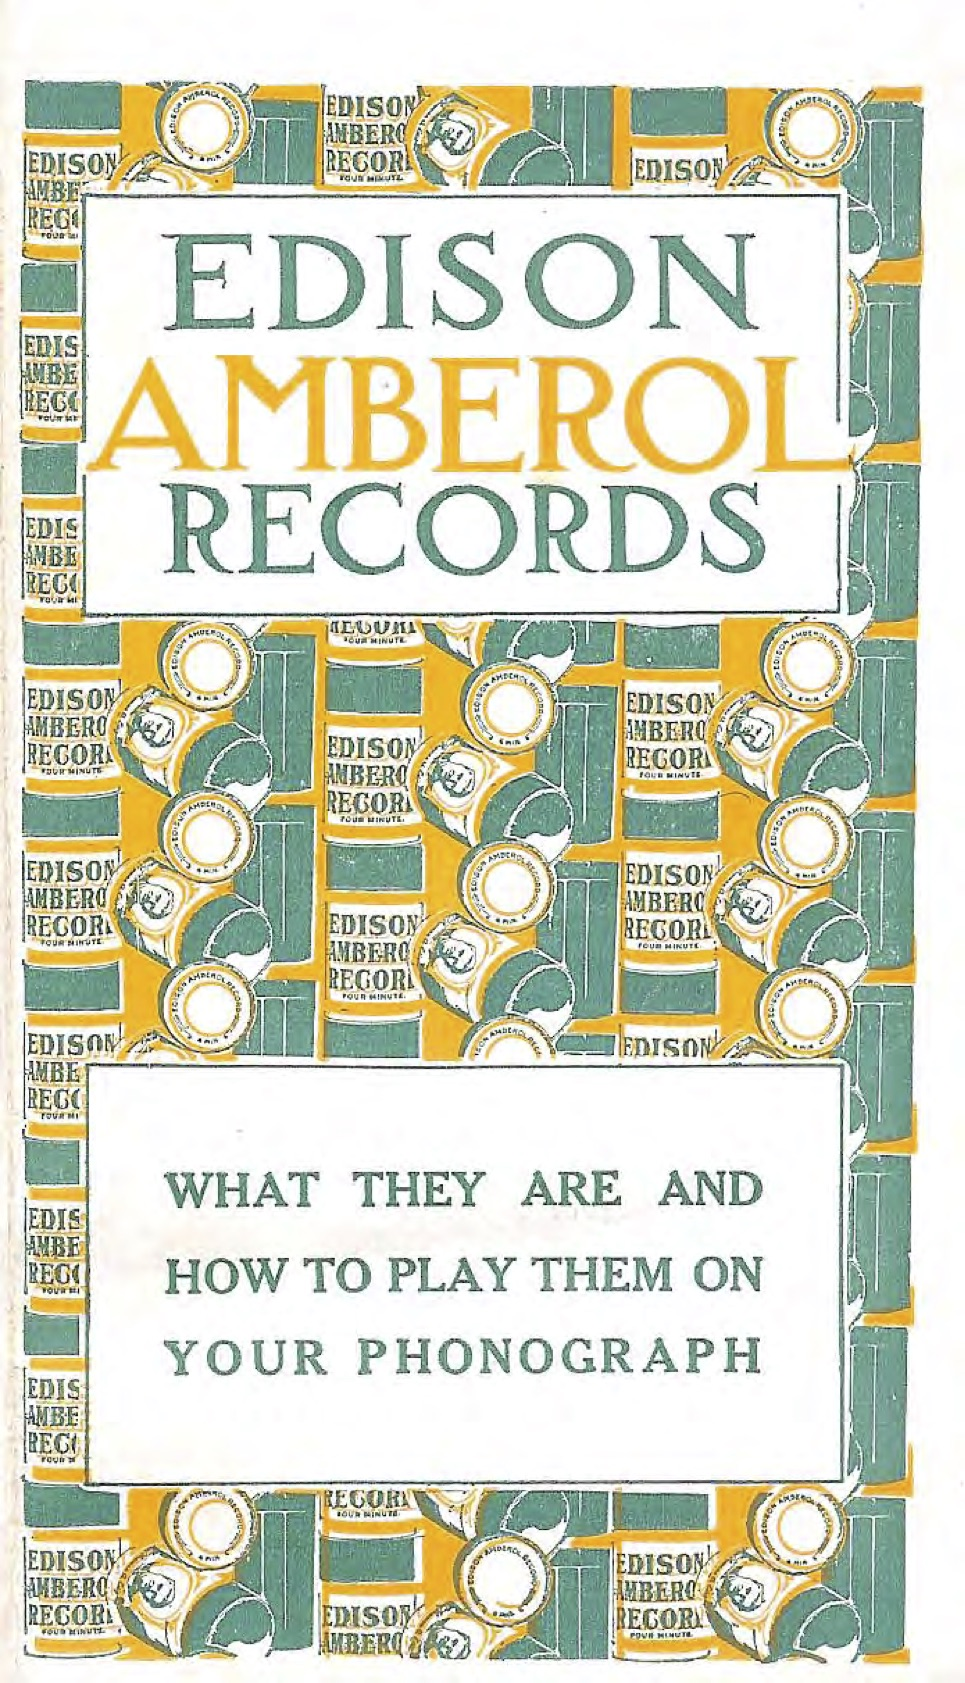 edison amberol records brochure